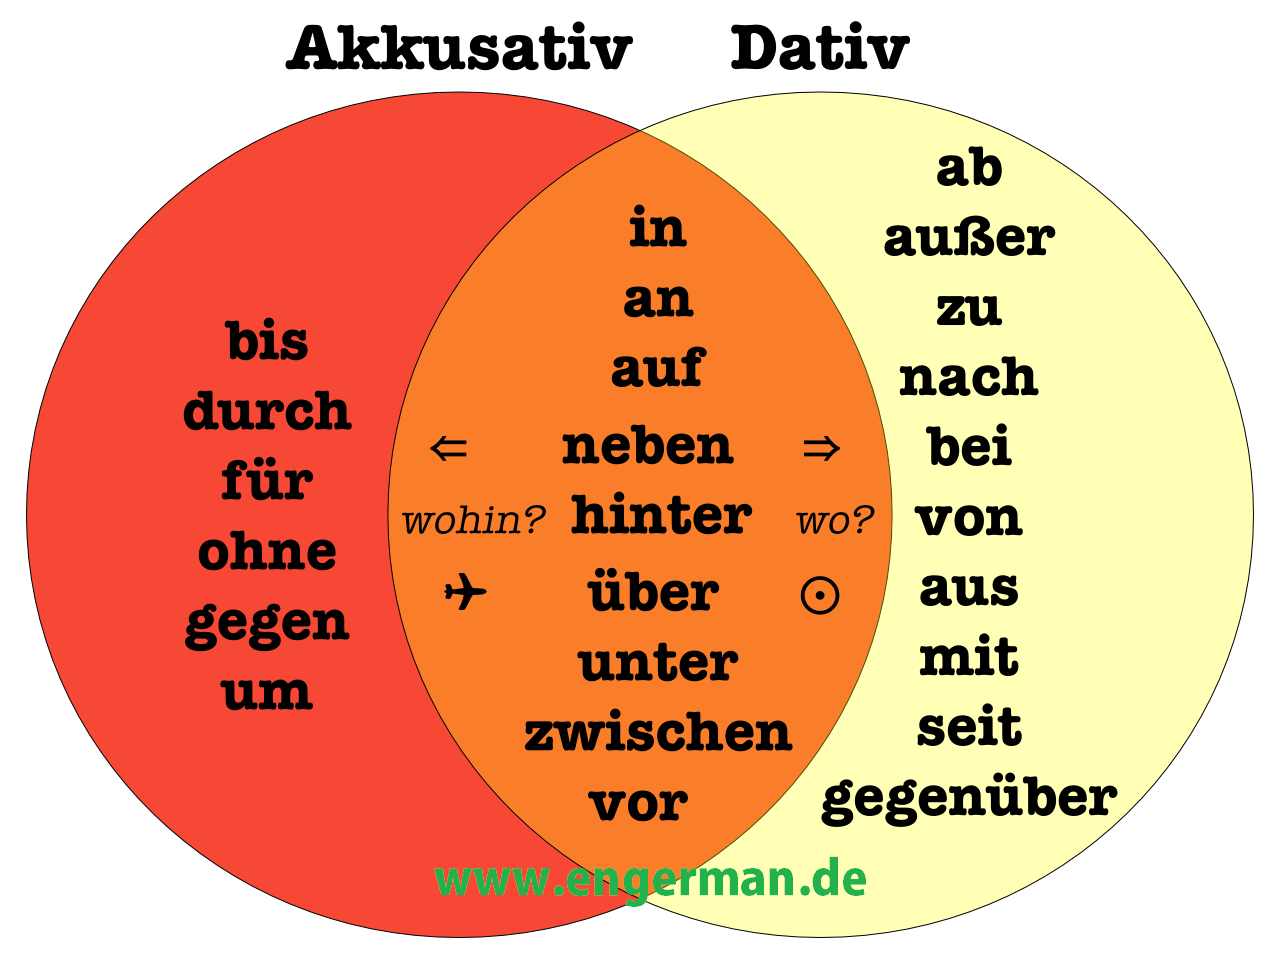 German grammar prapositionen mit dativ und akkusativ l for Prapositionen mit dativ und akkusativ ubungen